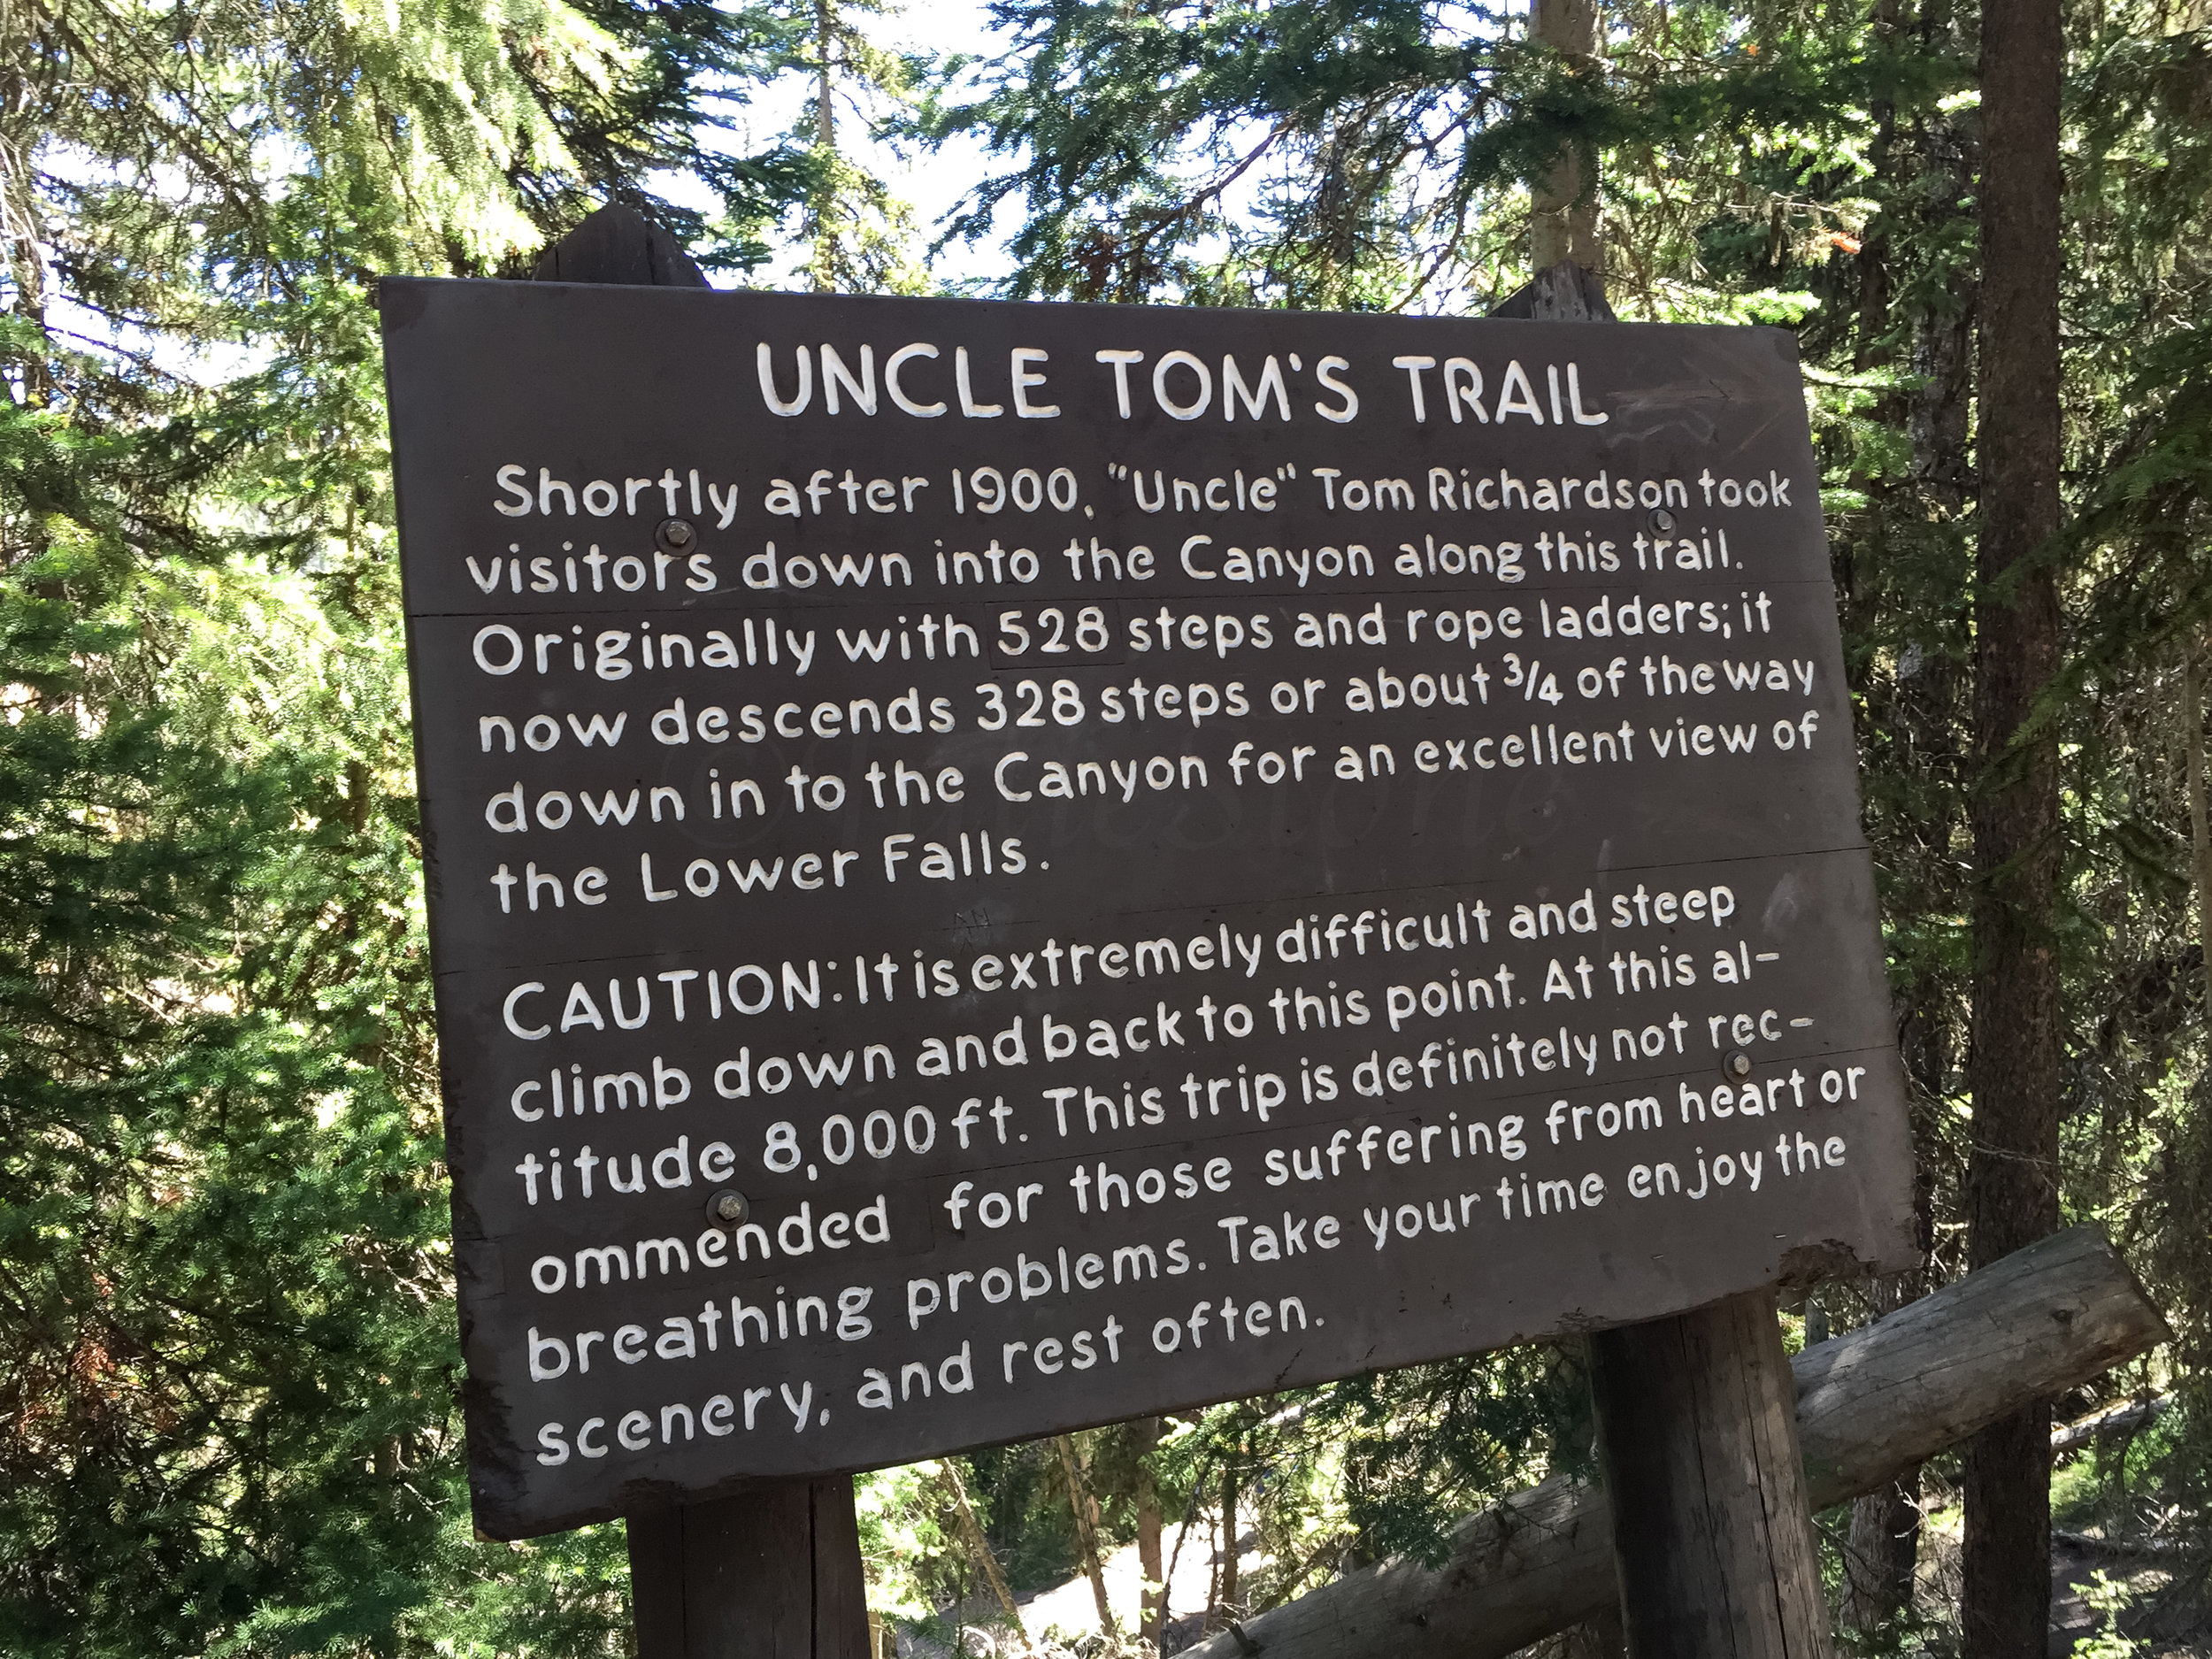 Uncle Tom's Trail, Image # 7298